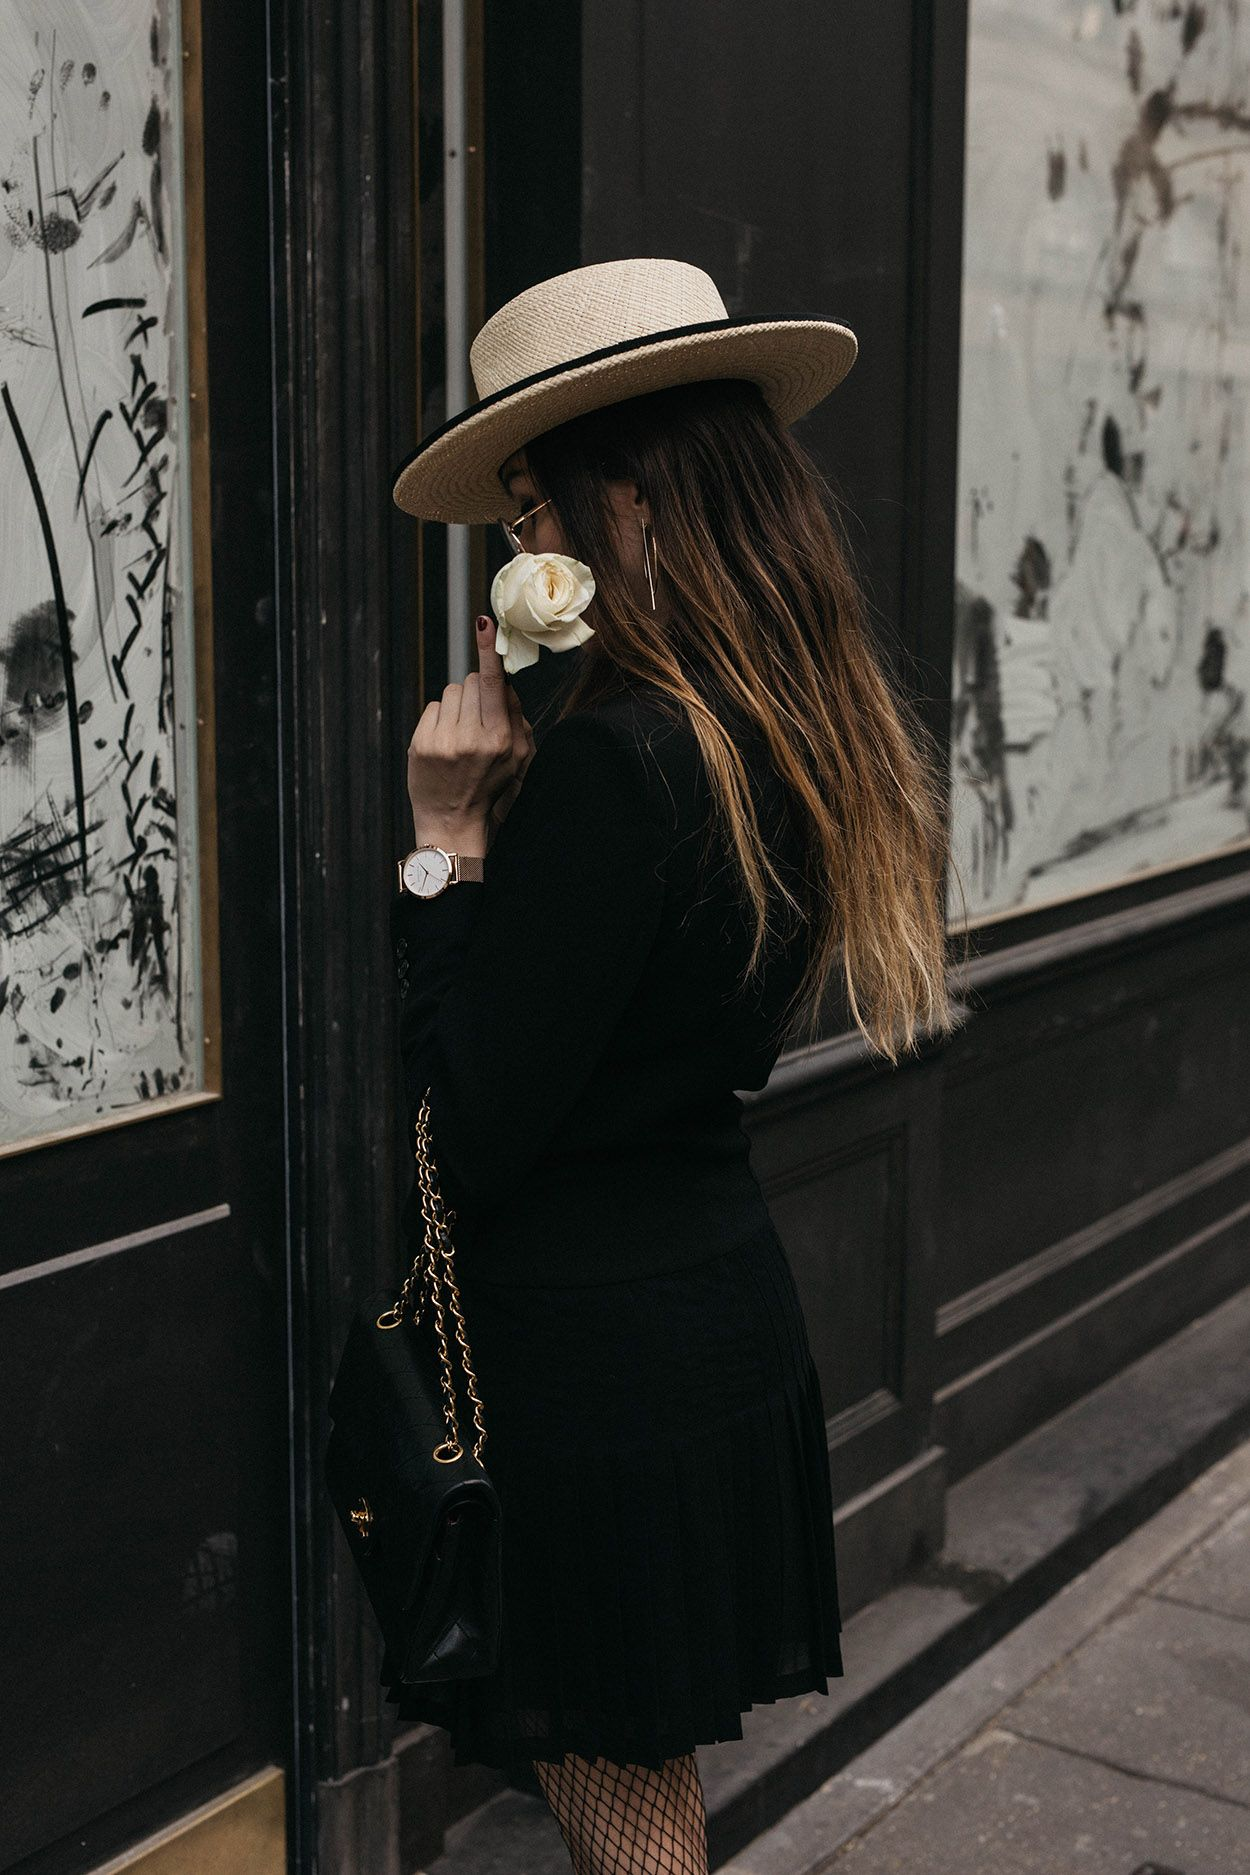 8604959c Chanel inspired editorial the kooples black tuxedo dress with chanel  classic flap bag fishnet tights and straw hat with black flower chic outfit  parisian ...